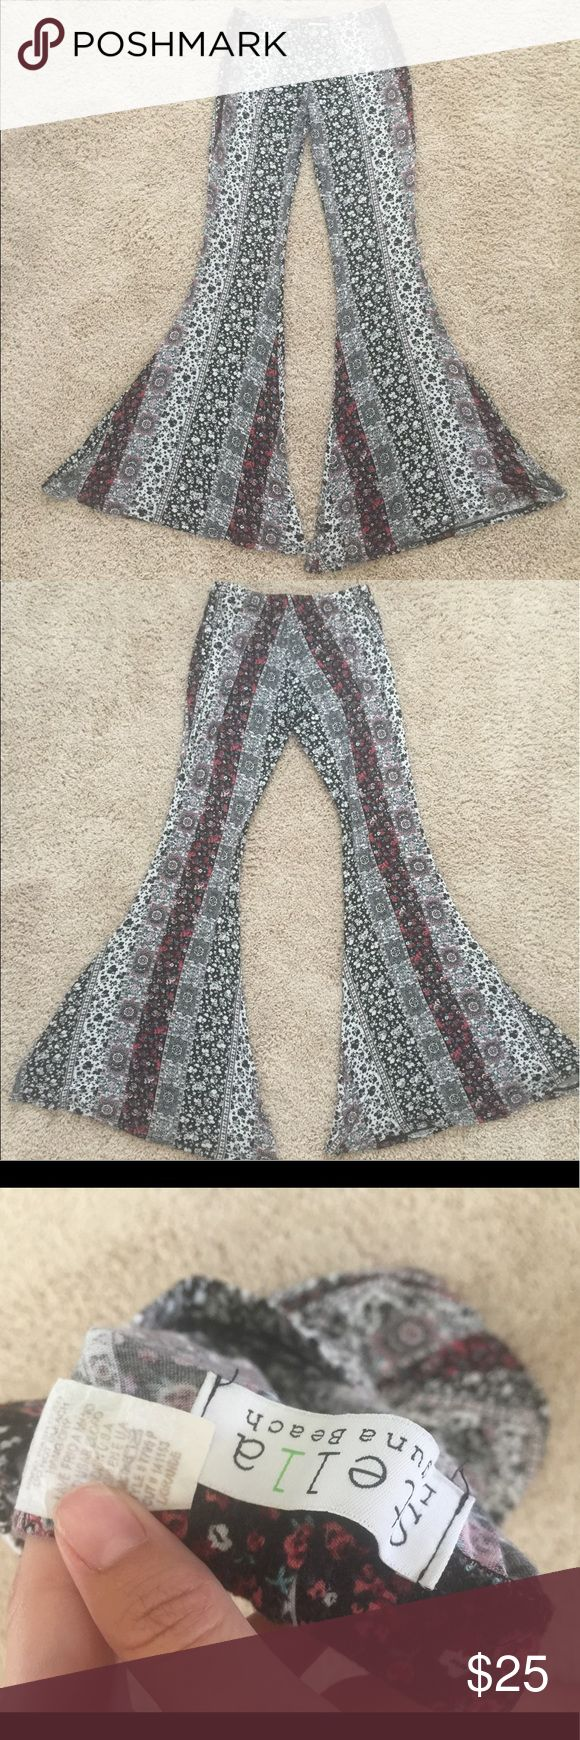 Bell Bottoms, Stella Laguna Beach Bell Bottoms, Stella Laguna Beach brand. Only worn a few times, still in good condition. They are long, I am 5'7 and they hit the floor 👍🏼 size L, stretchy though so someone smaller or bigger can fit in them Stella Laguna Beach  Pants Boot Cut & Flare